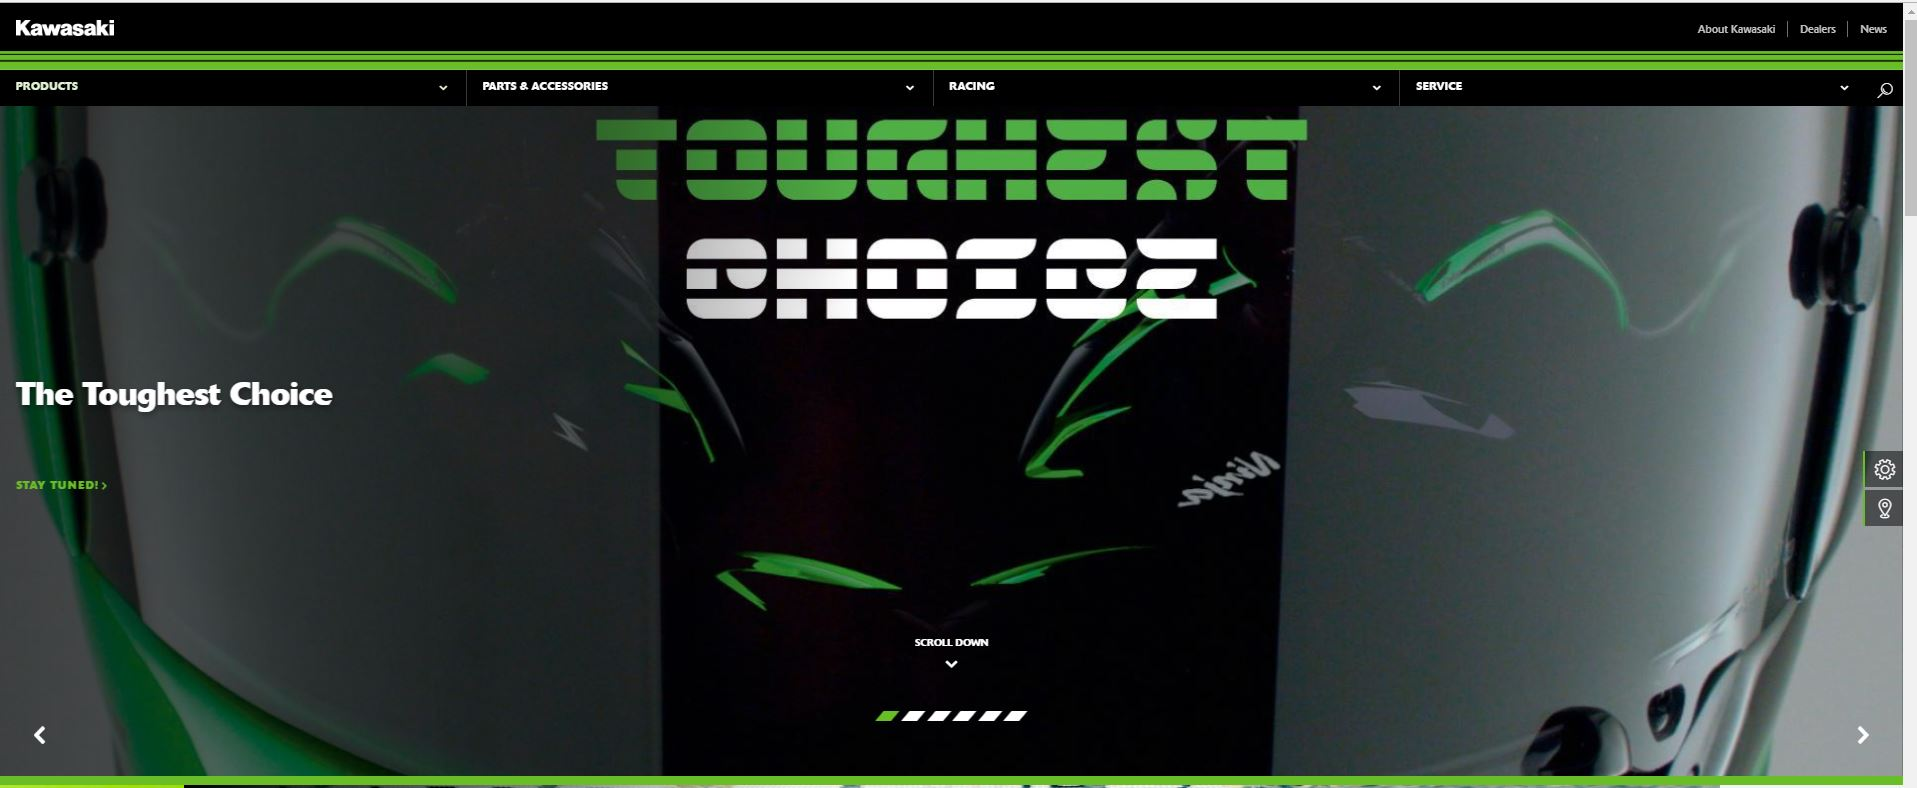 Teaser Kawasaki The Toughes Choice Ninja 125 VS Z125